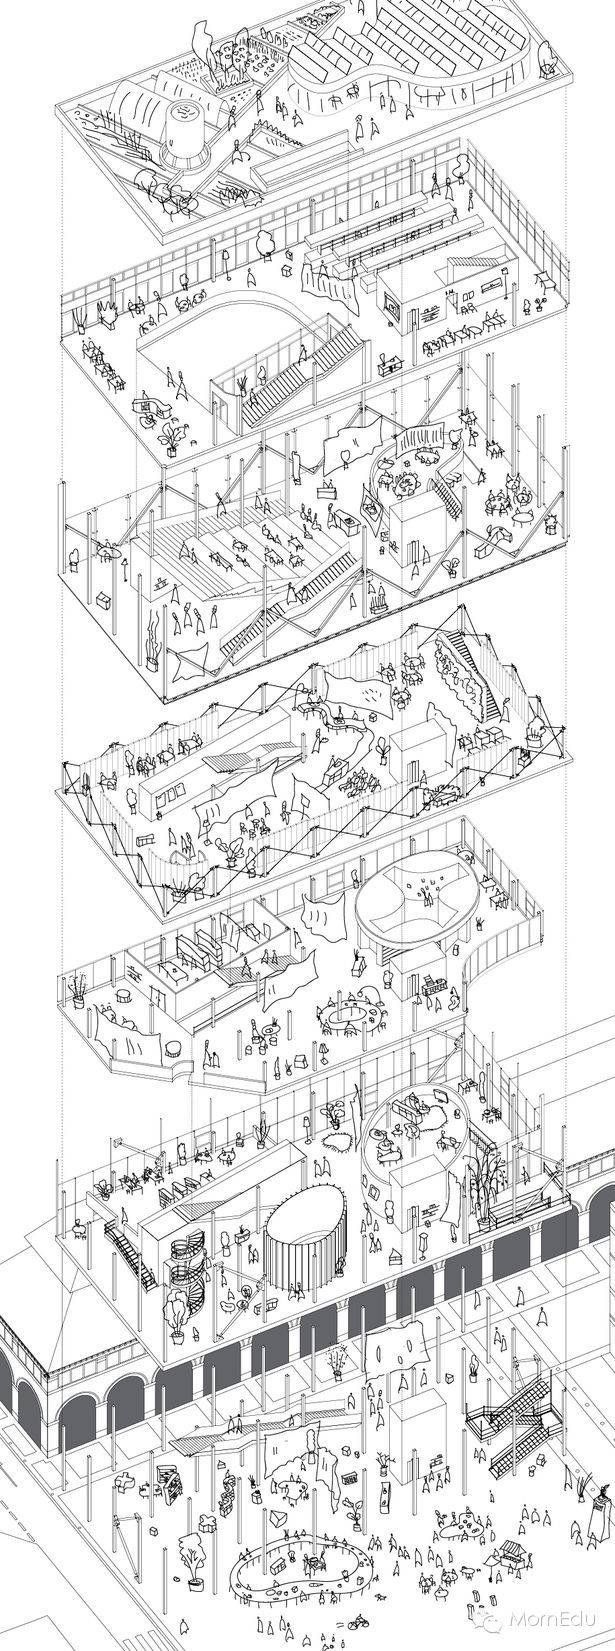 Pin By Chuhan Paris Feng On Architectural Drawings Diagram Architecture Architecture Sketchbook Architecture Illustration